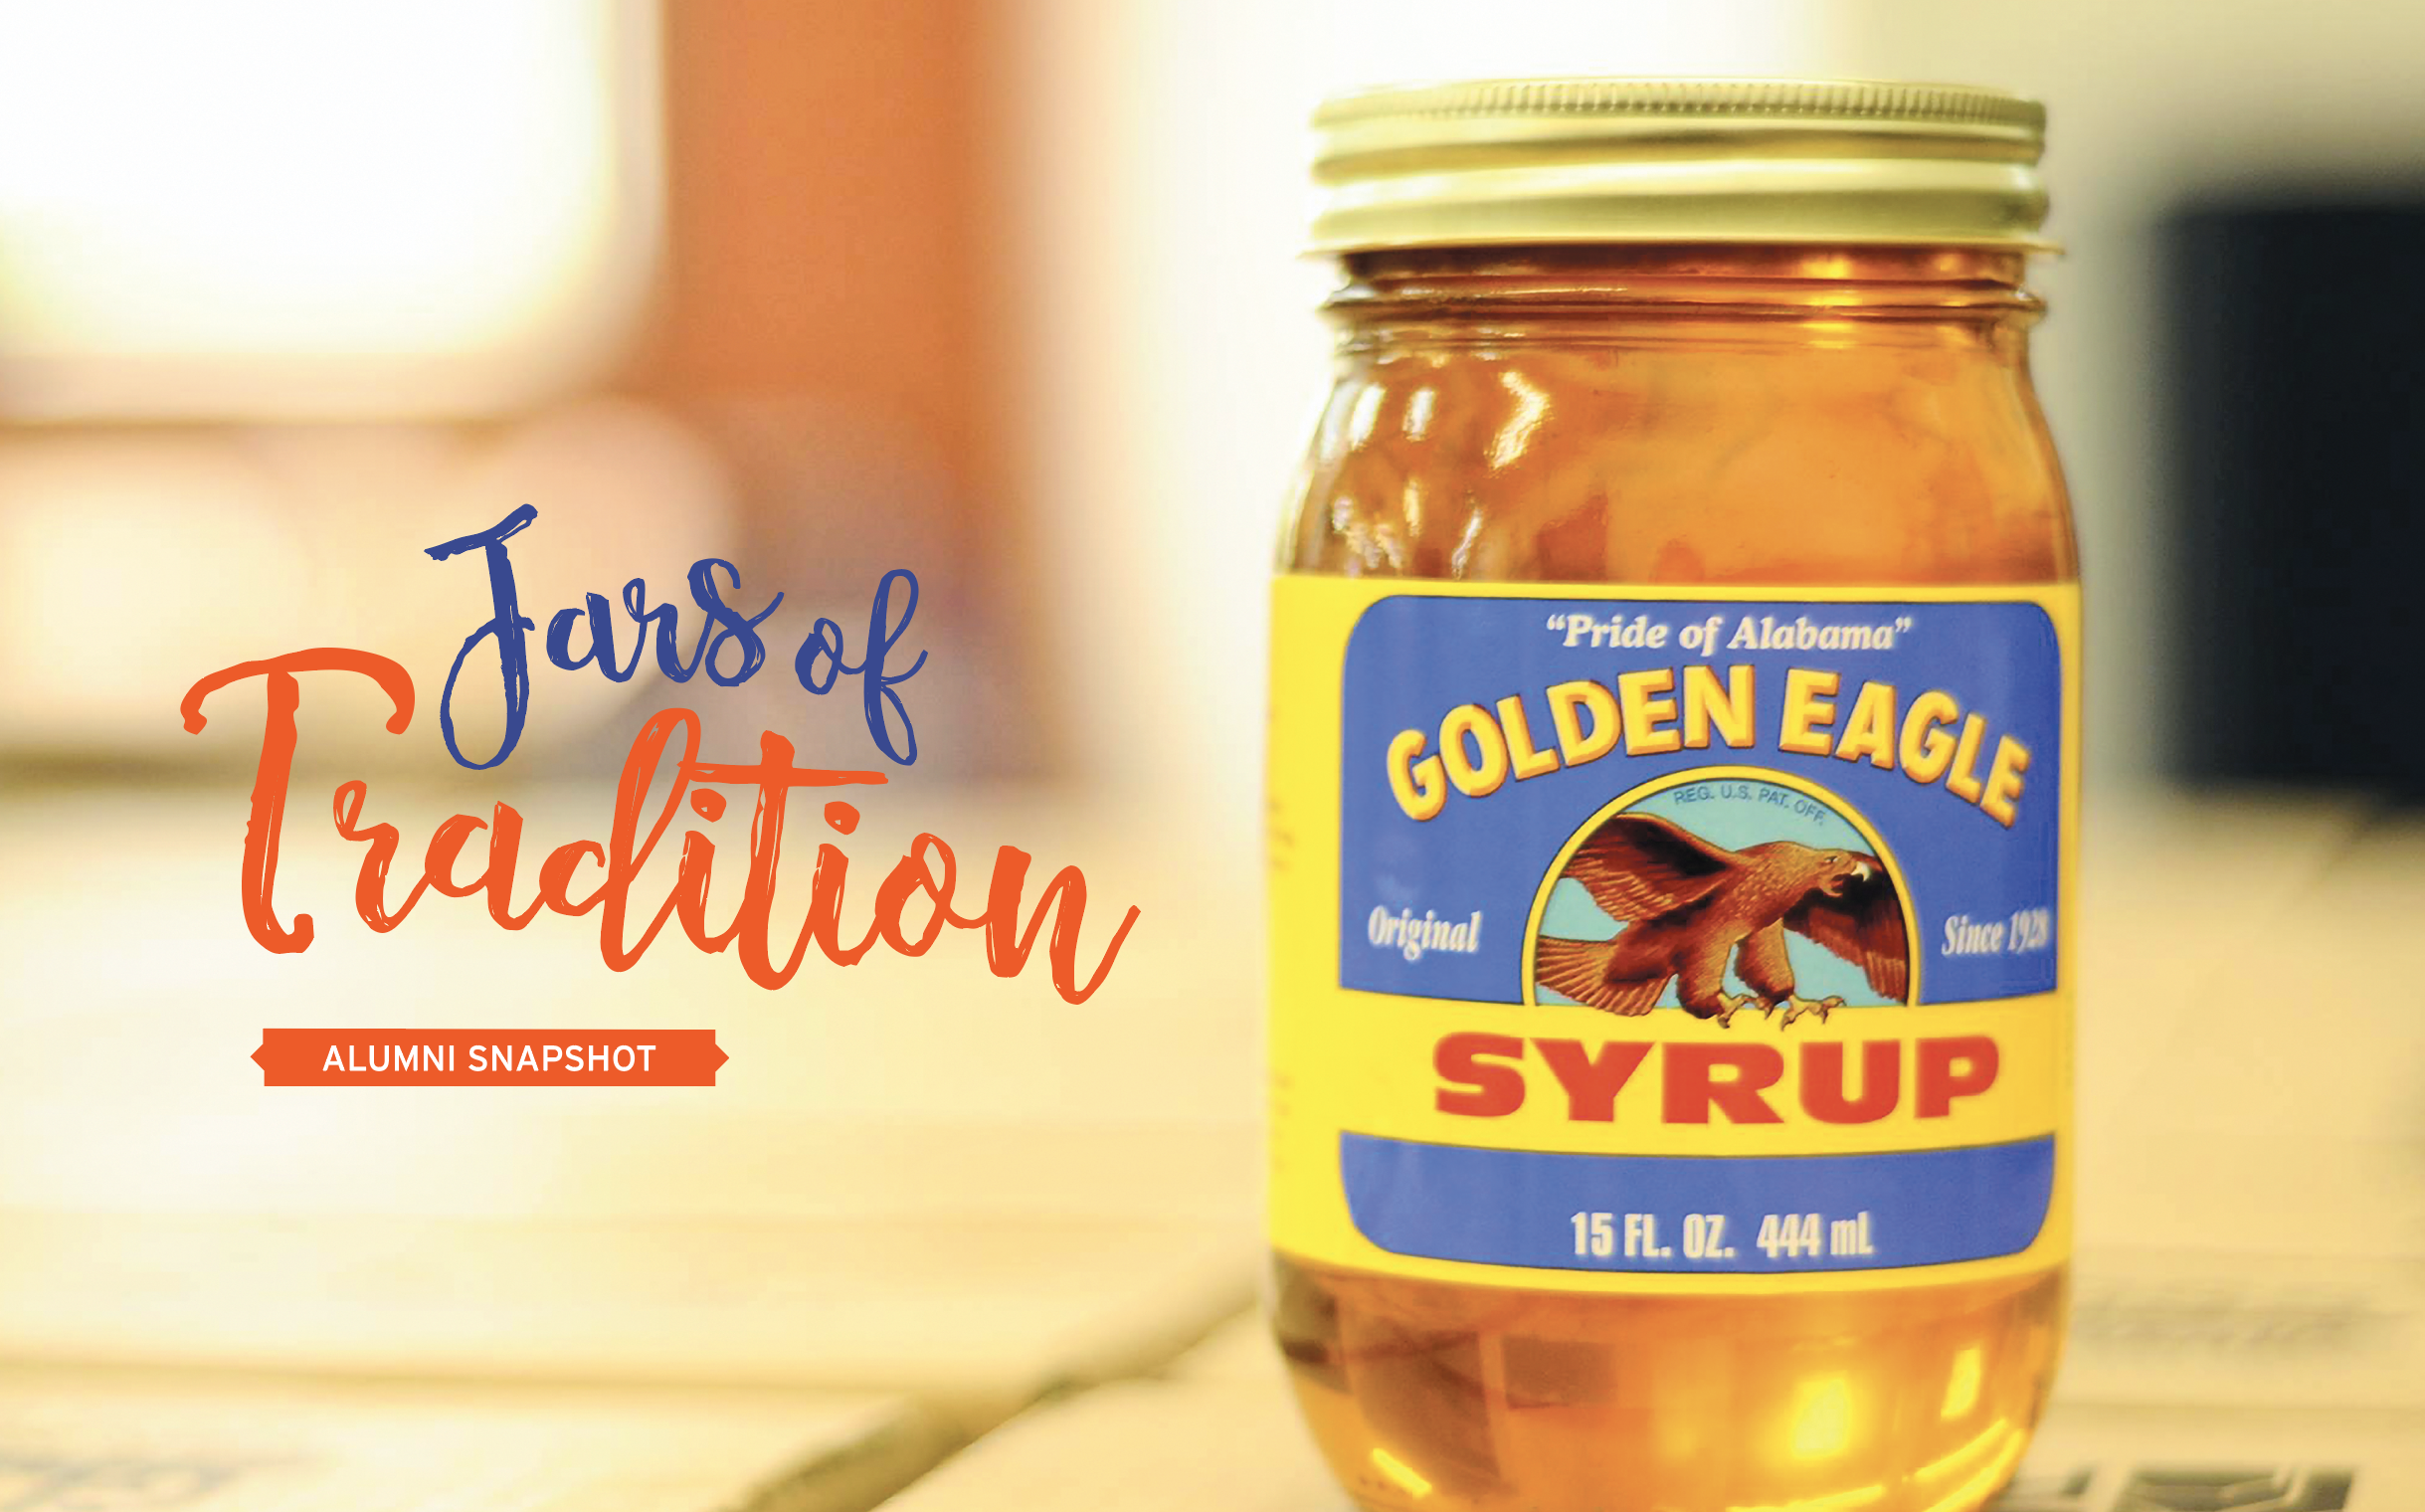 Jars of Tradition Alumni Snapshot; Jar of Golden Eagle Syrup